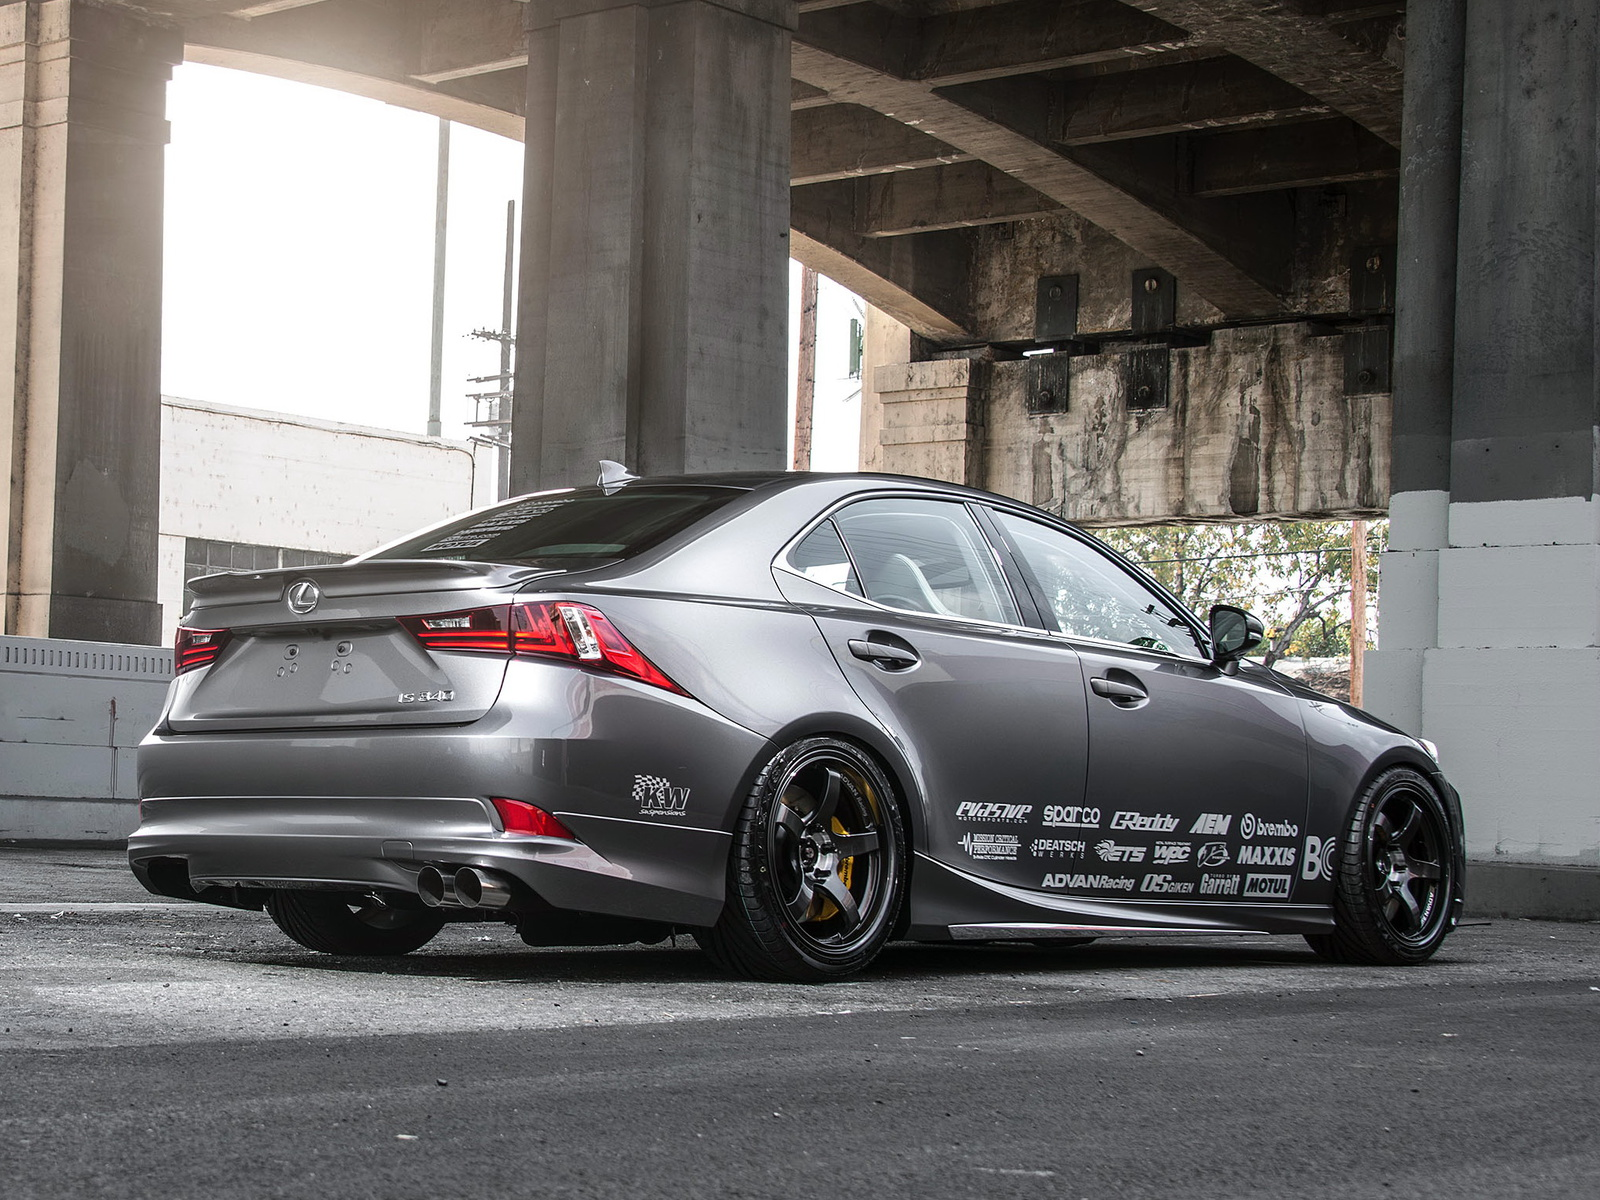 2014 lexus is 340 by philip chase tuning i s f wallpaper 1600x1200 171140 wallpaperup. Black Bedroom Furniture Sets. Home Design Ideas